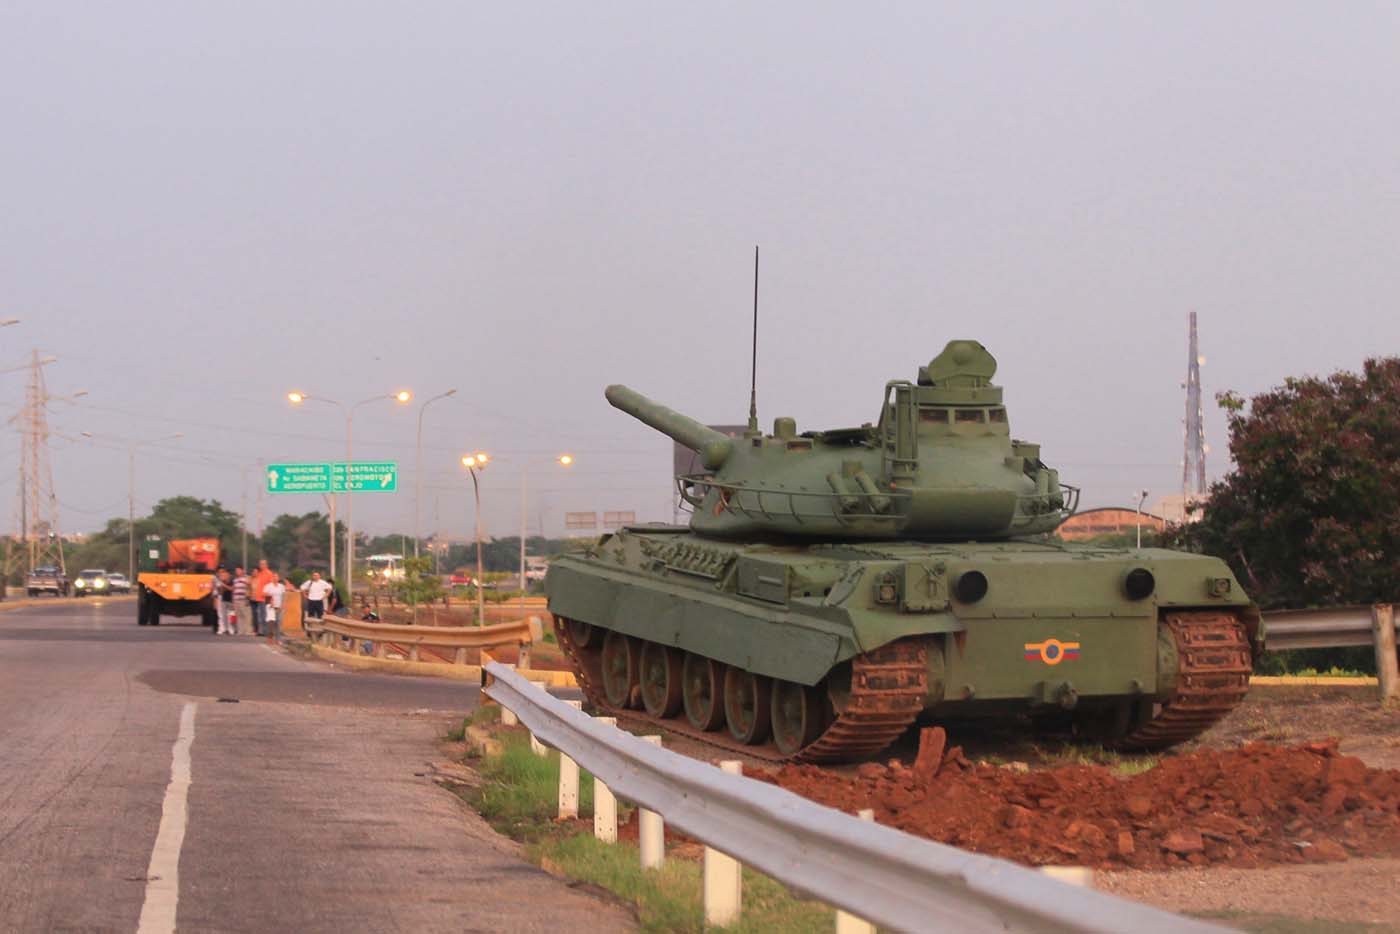 A military tank is seen along a main highway, as part of military exercises, in Maracaibo, Venezuela August 25, 2017. REUTERS/Isaac Urrutia